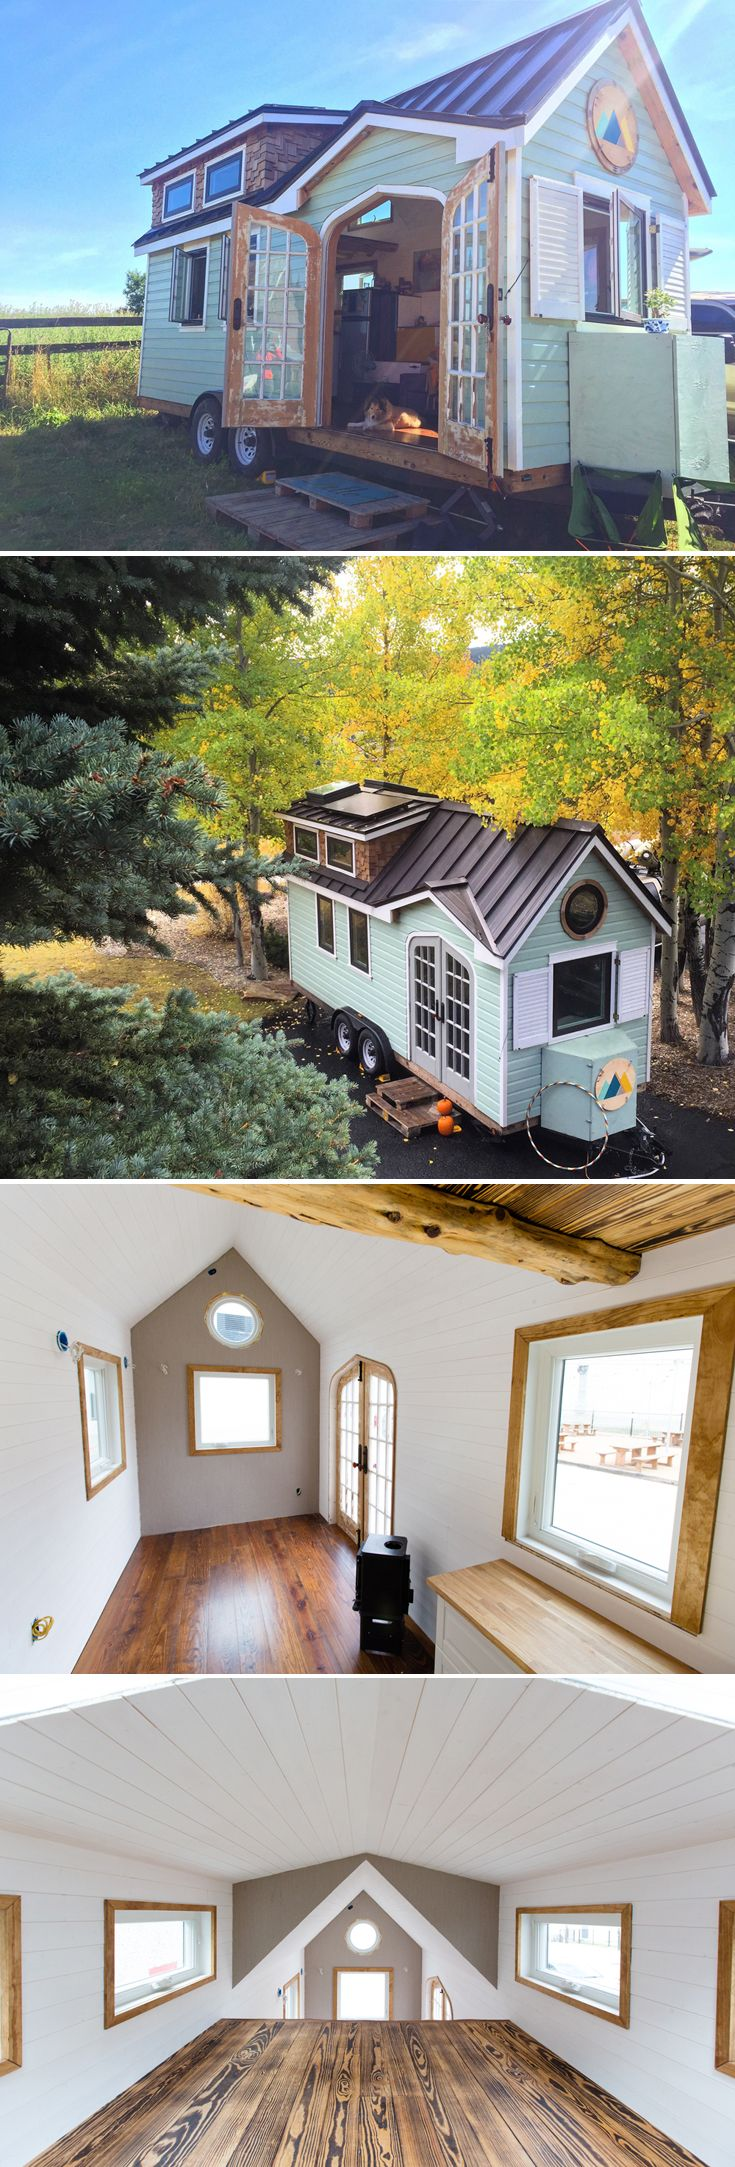 Randi and Cody Hennigan built their tiny house, nicknamed the Best Little House in Texas, as a DIY project so they could live more sustainably.